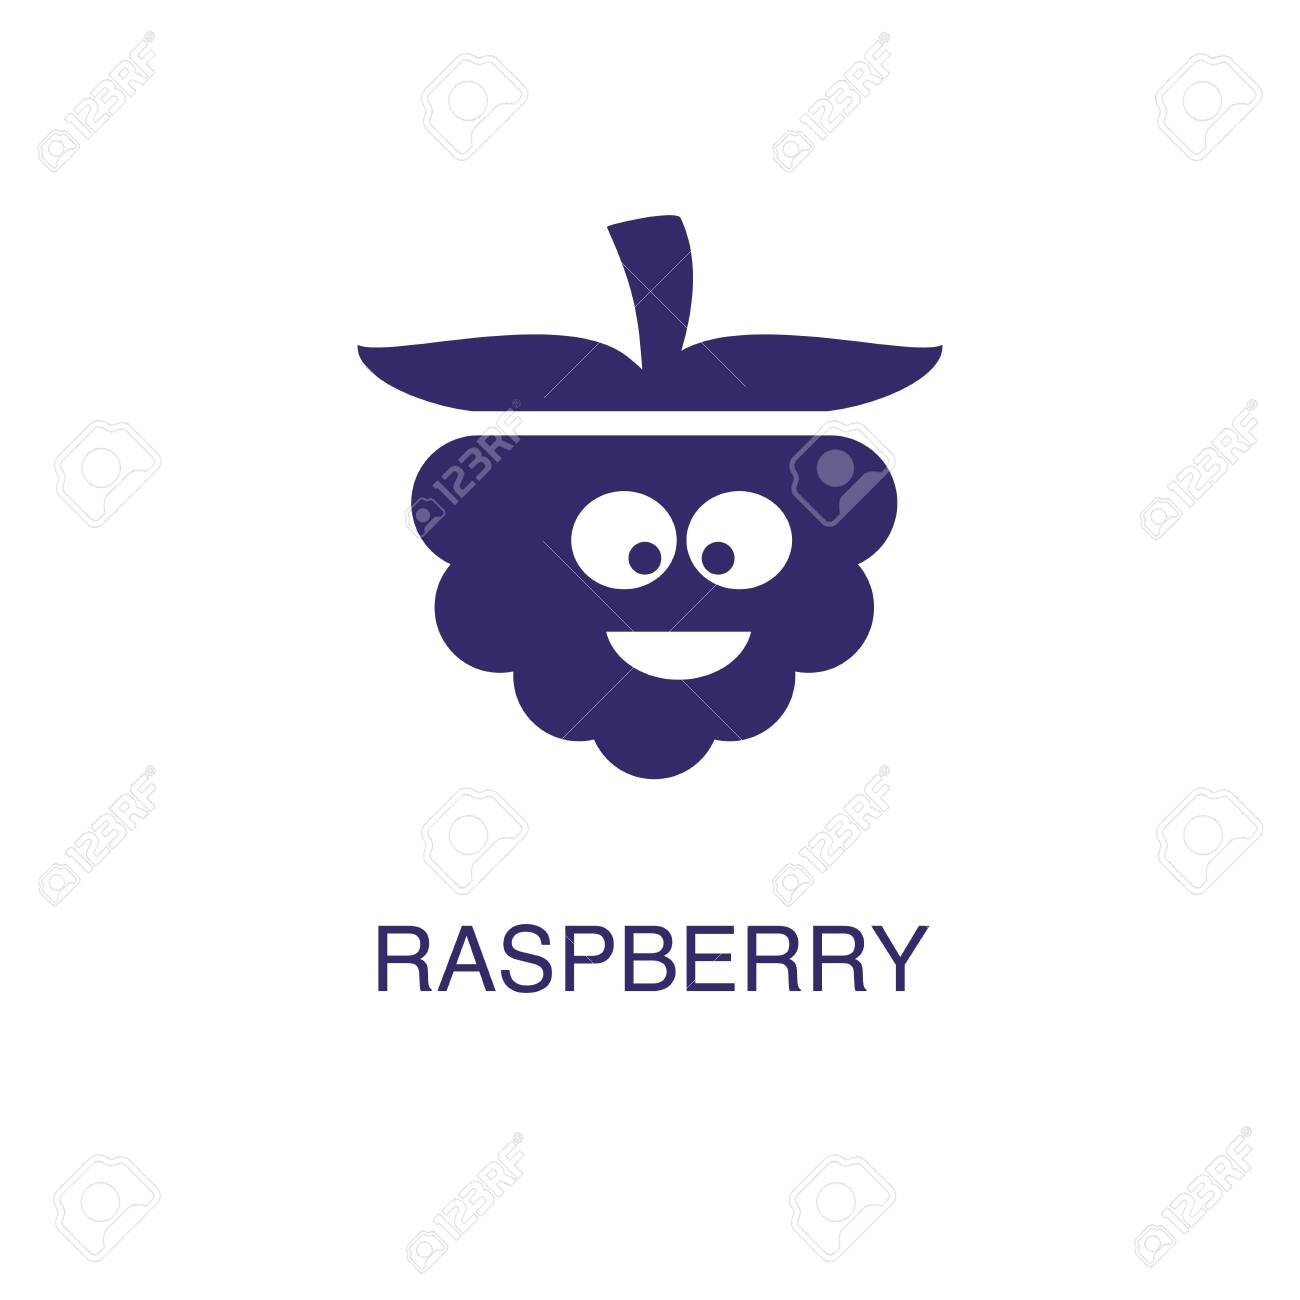 Raspberry element in flat simple style on white background. Raspberry icon, with text name concept template - 135073724